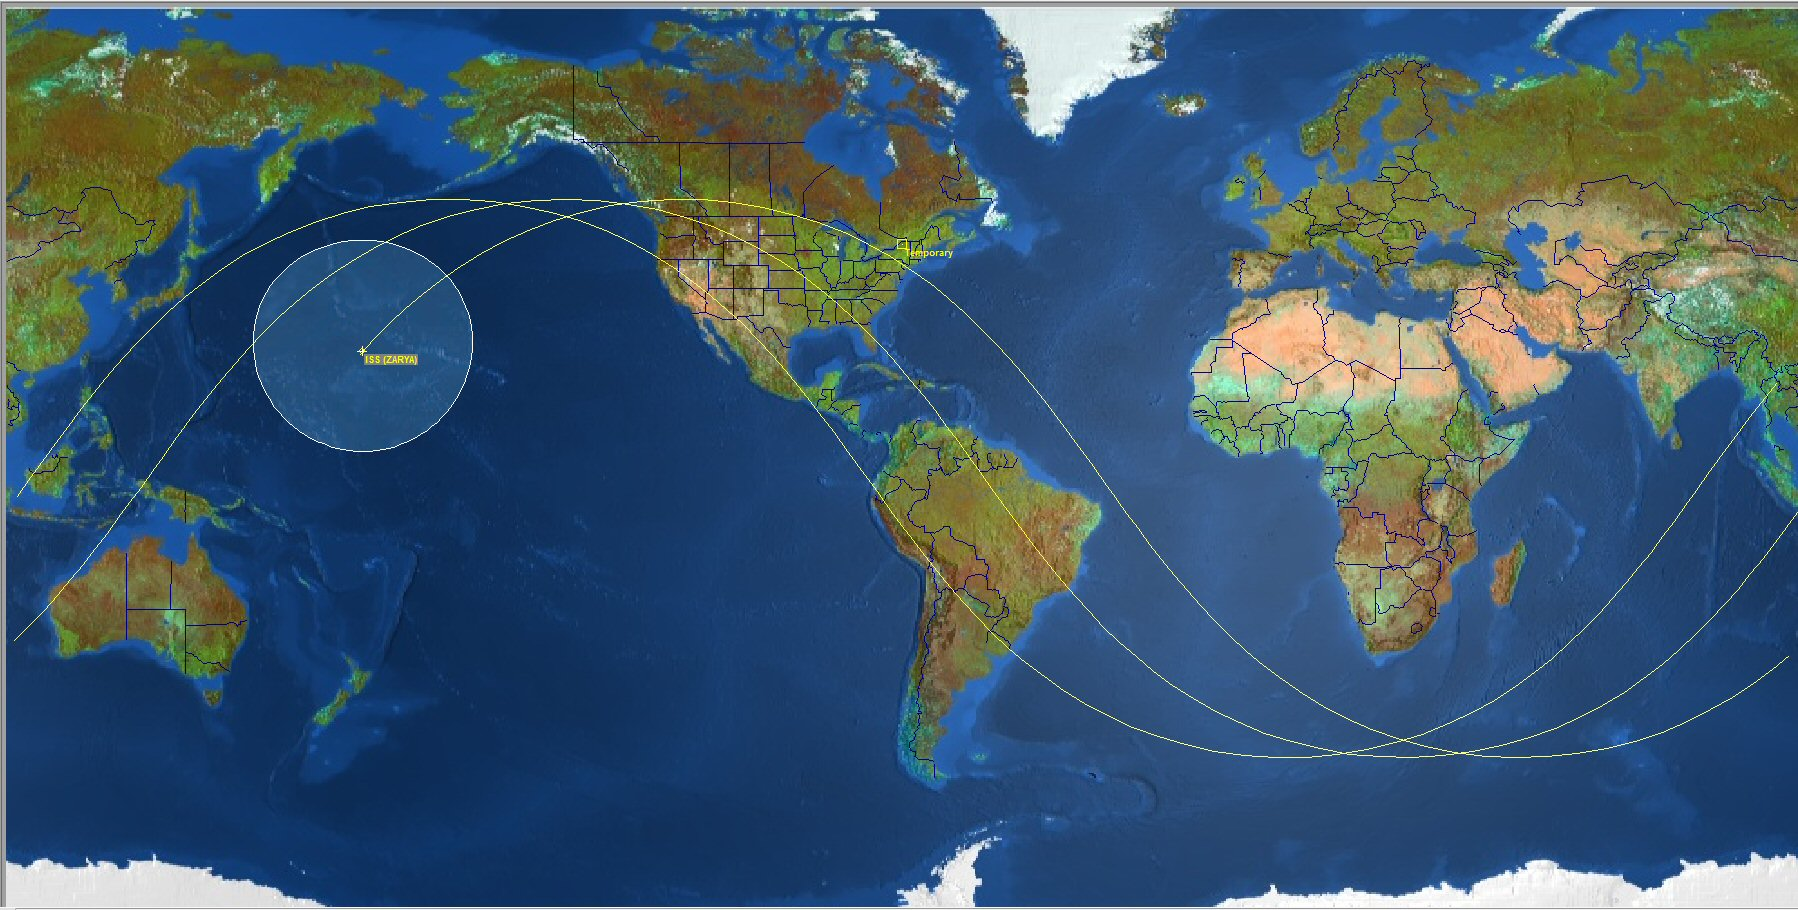 space station trajectory - photo #15